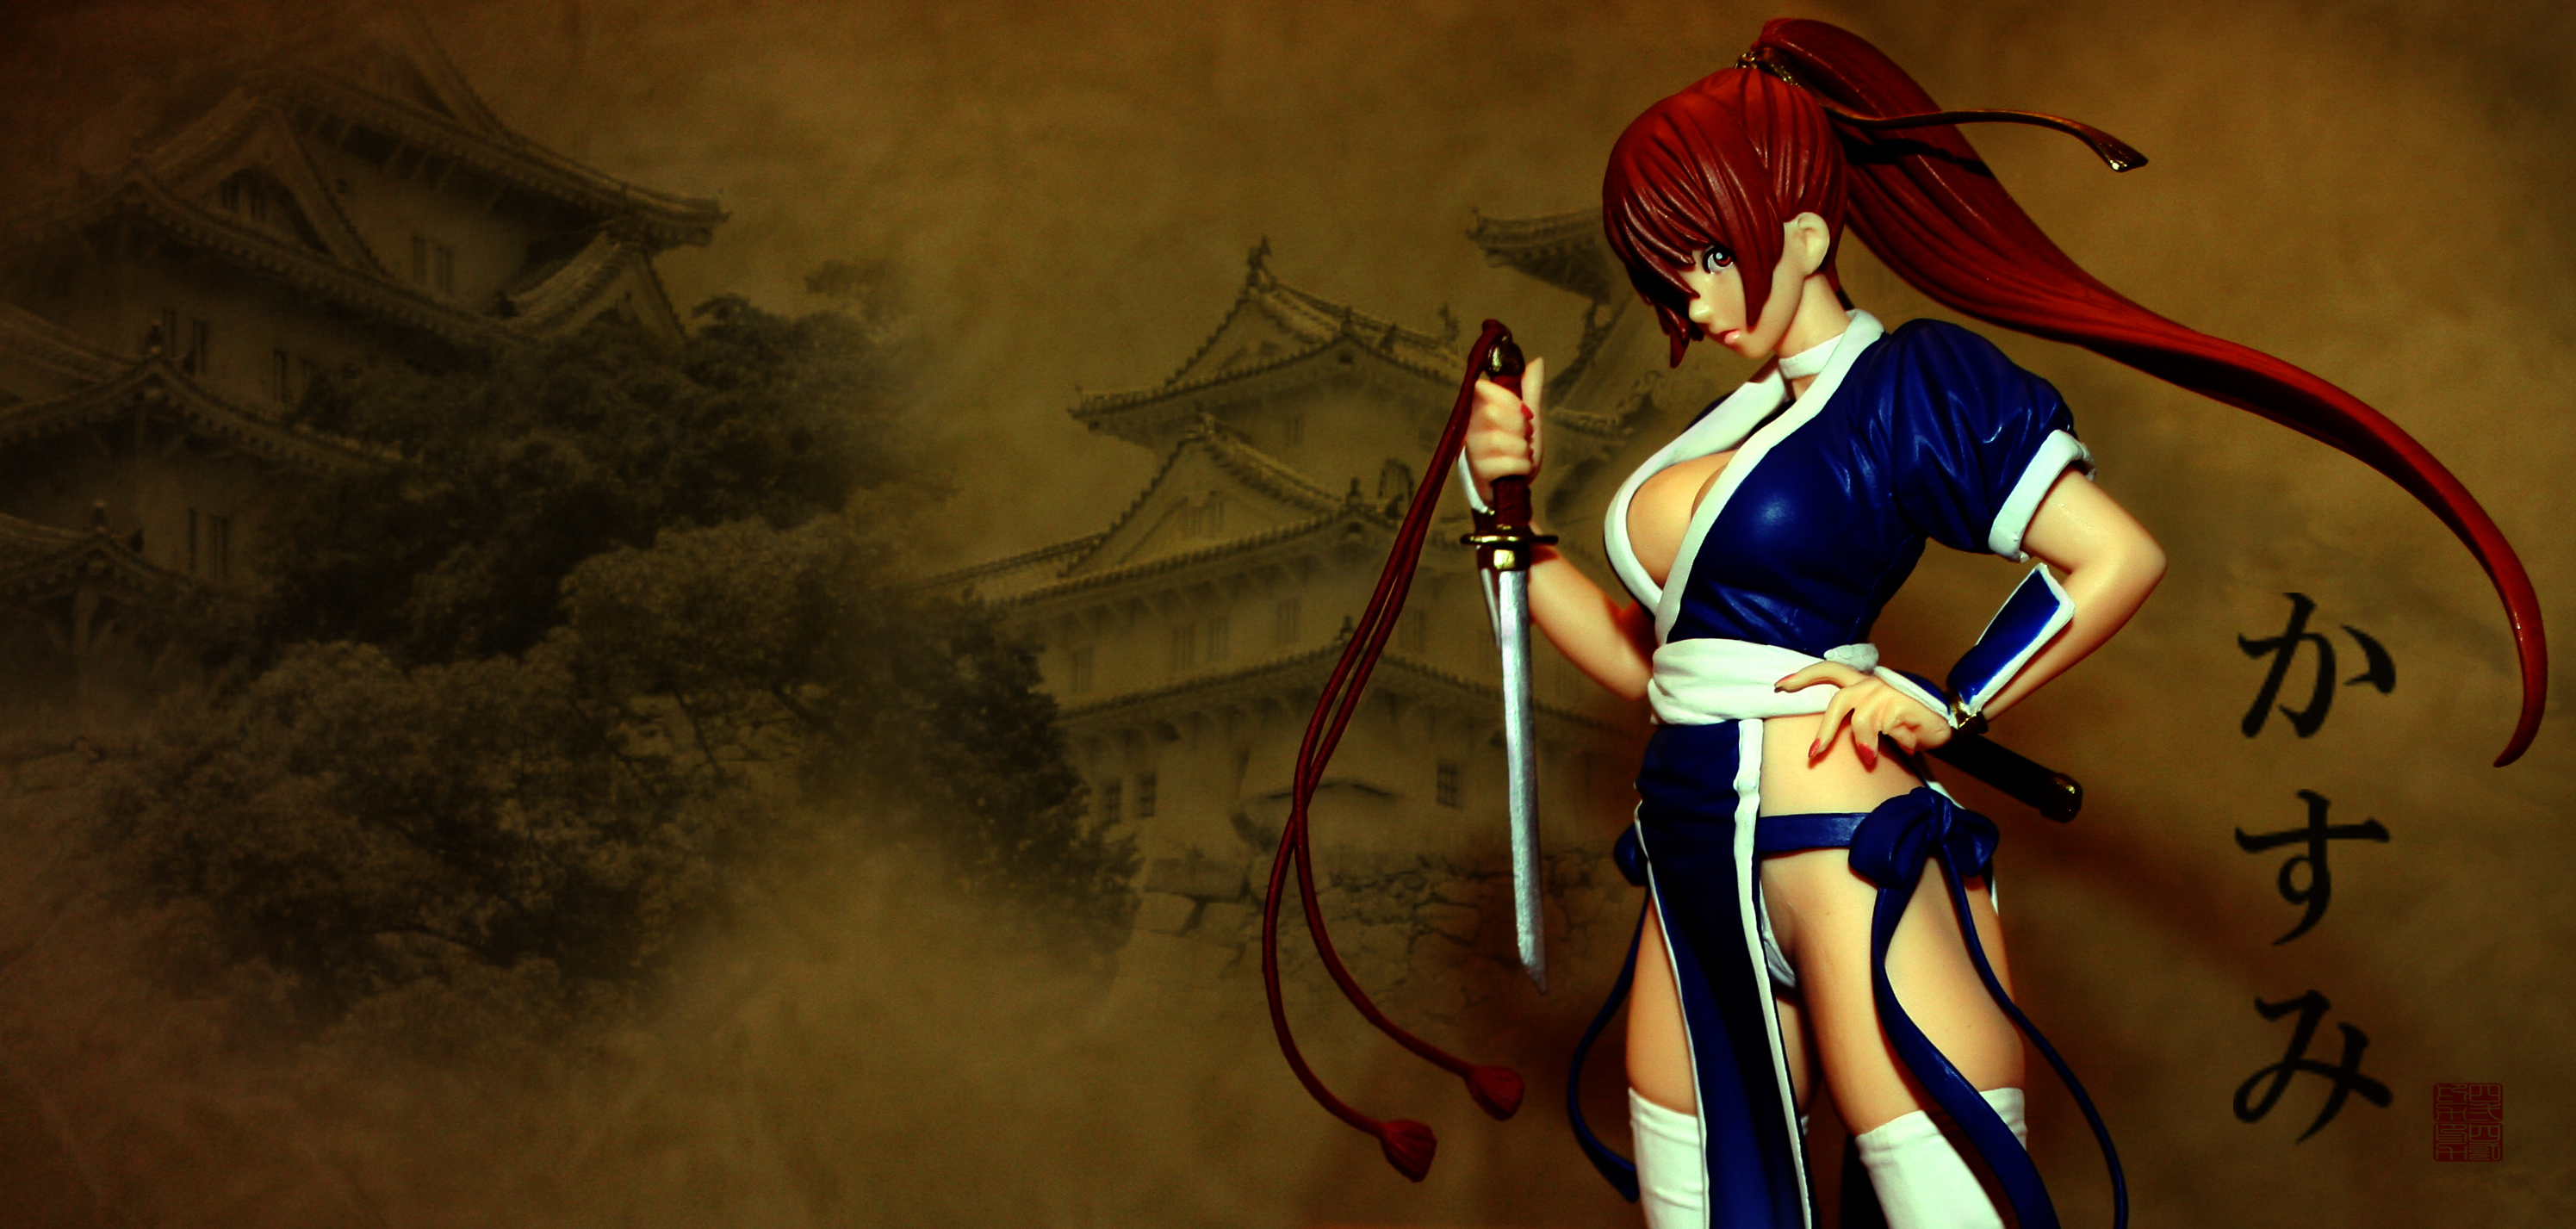 dead or alive hd wallpaper background image 2991x1427